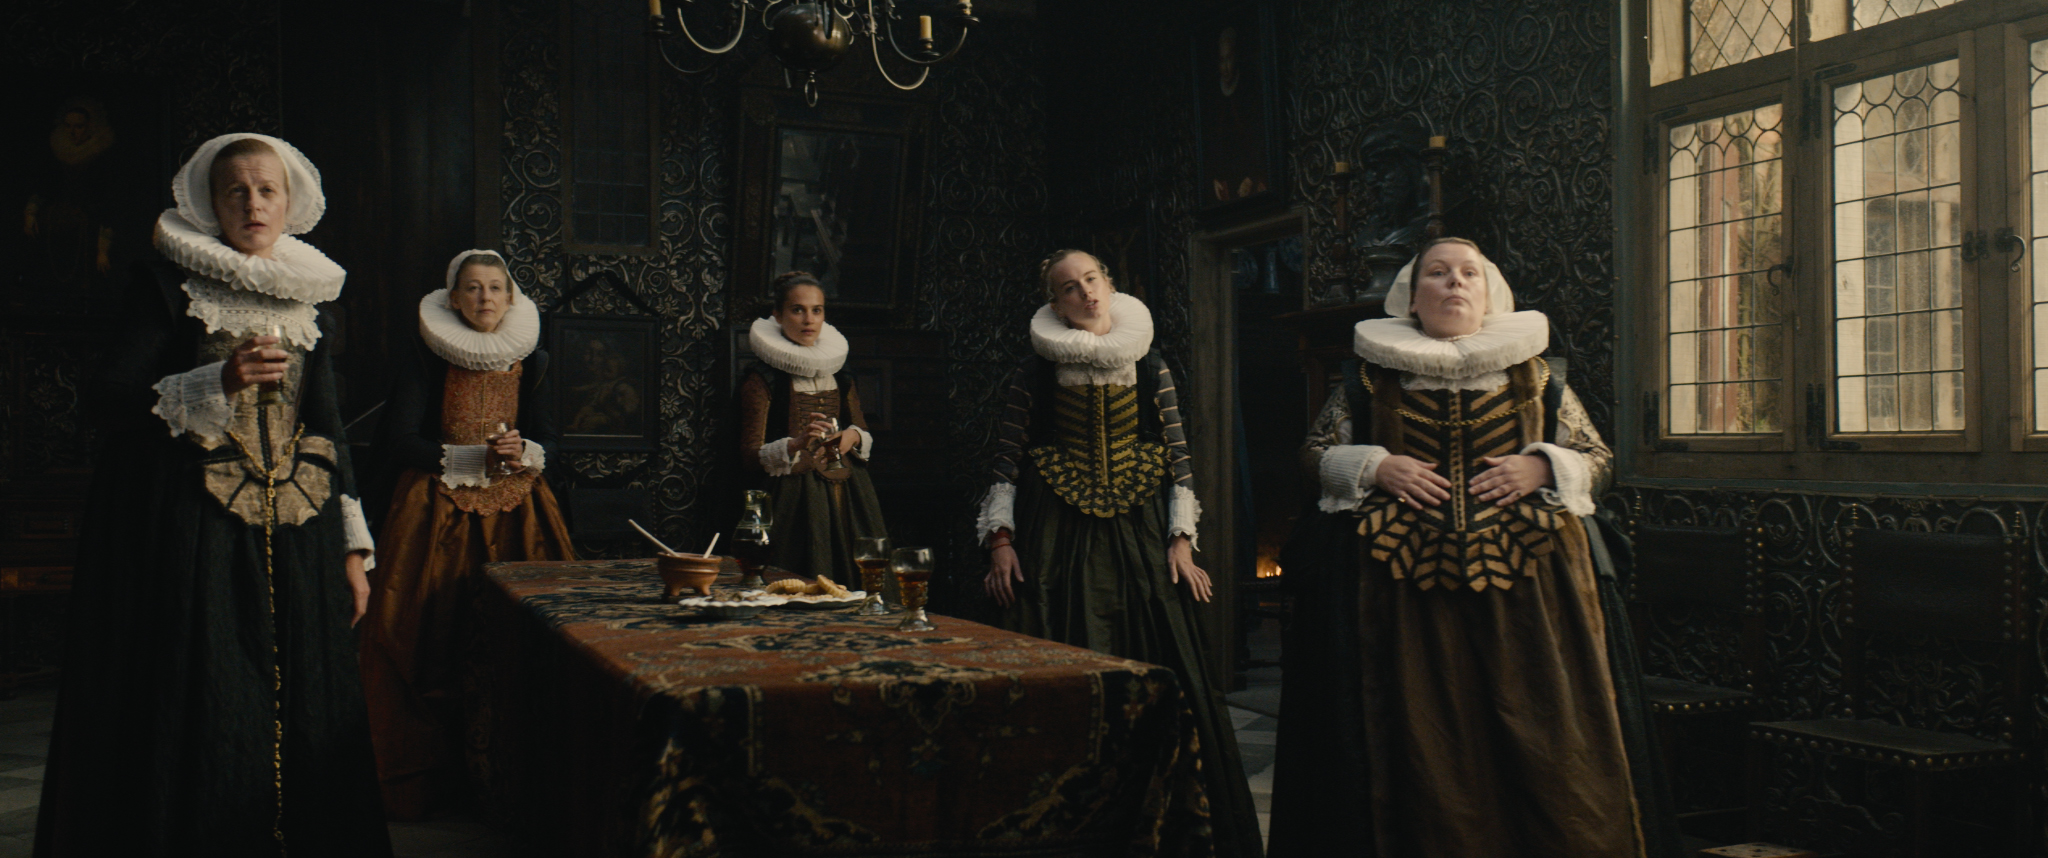 For Tulip Fever, cinematographer Eigil Bryld sought to emulate the lighting evidenced in the paintings of the Dutch Golden Age.